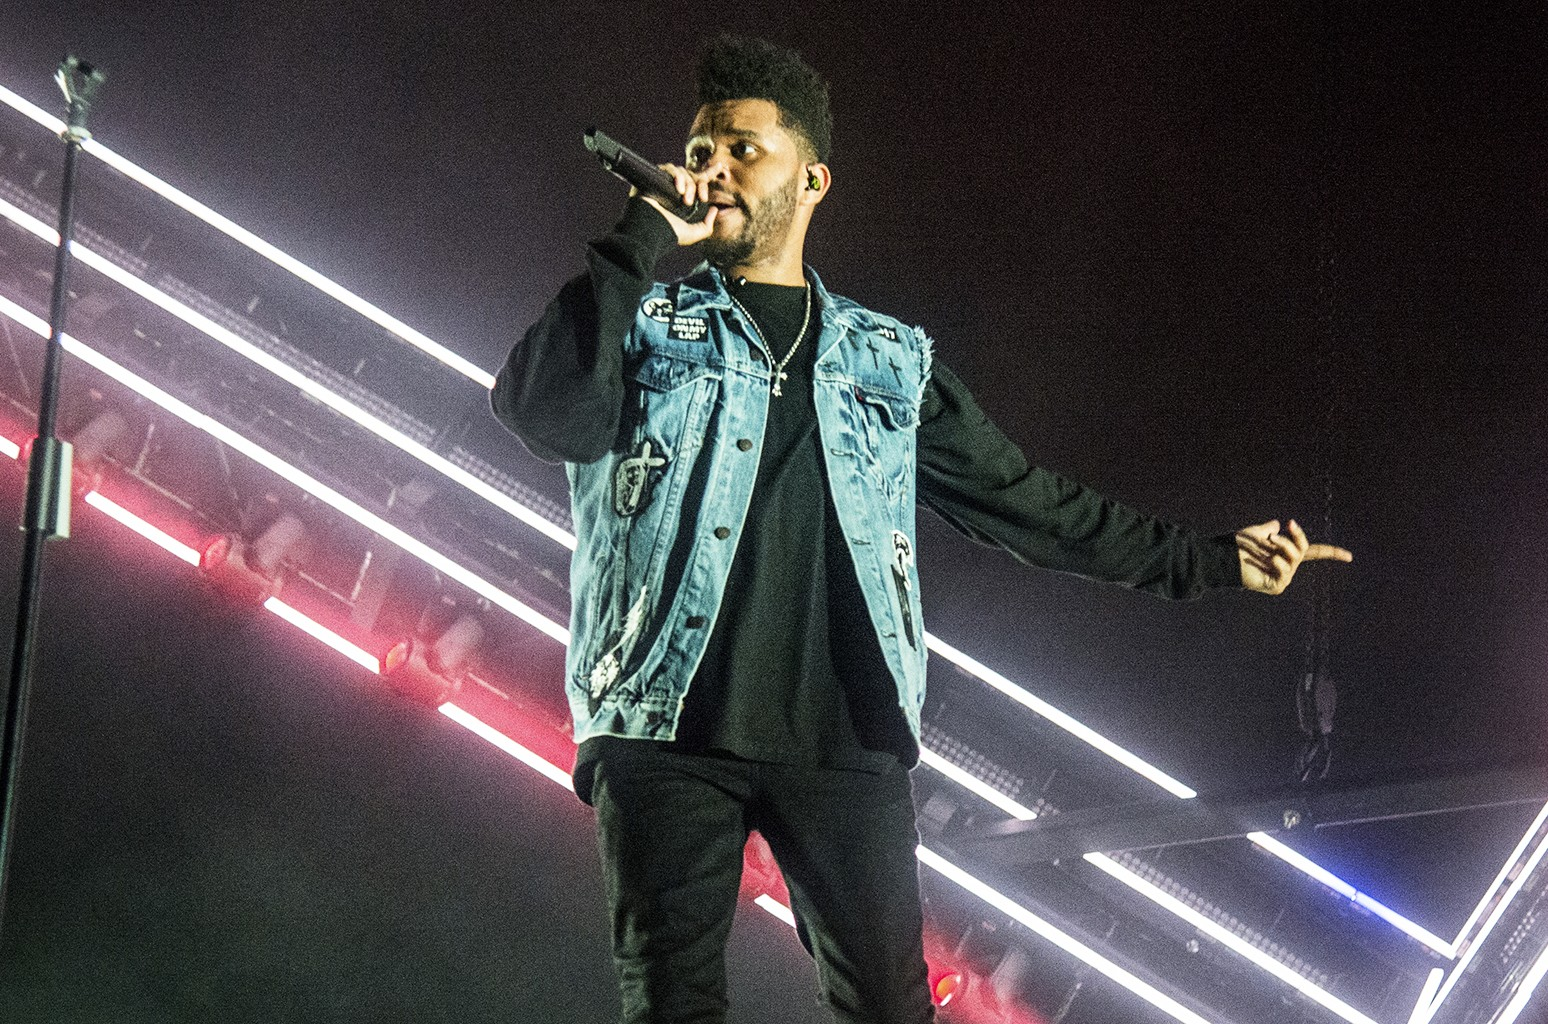 The Weeknd performs at the Bonnaroo Music and Arts Festival on June 11, 2017 in Manchester, Tenn.